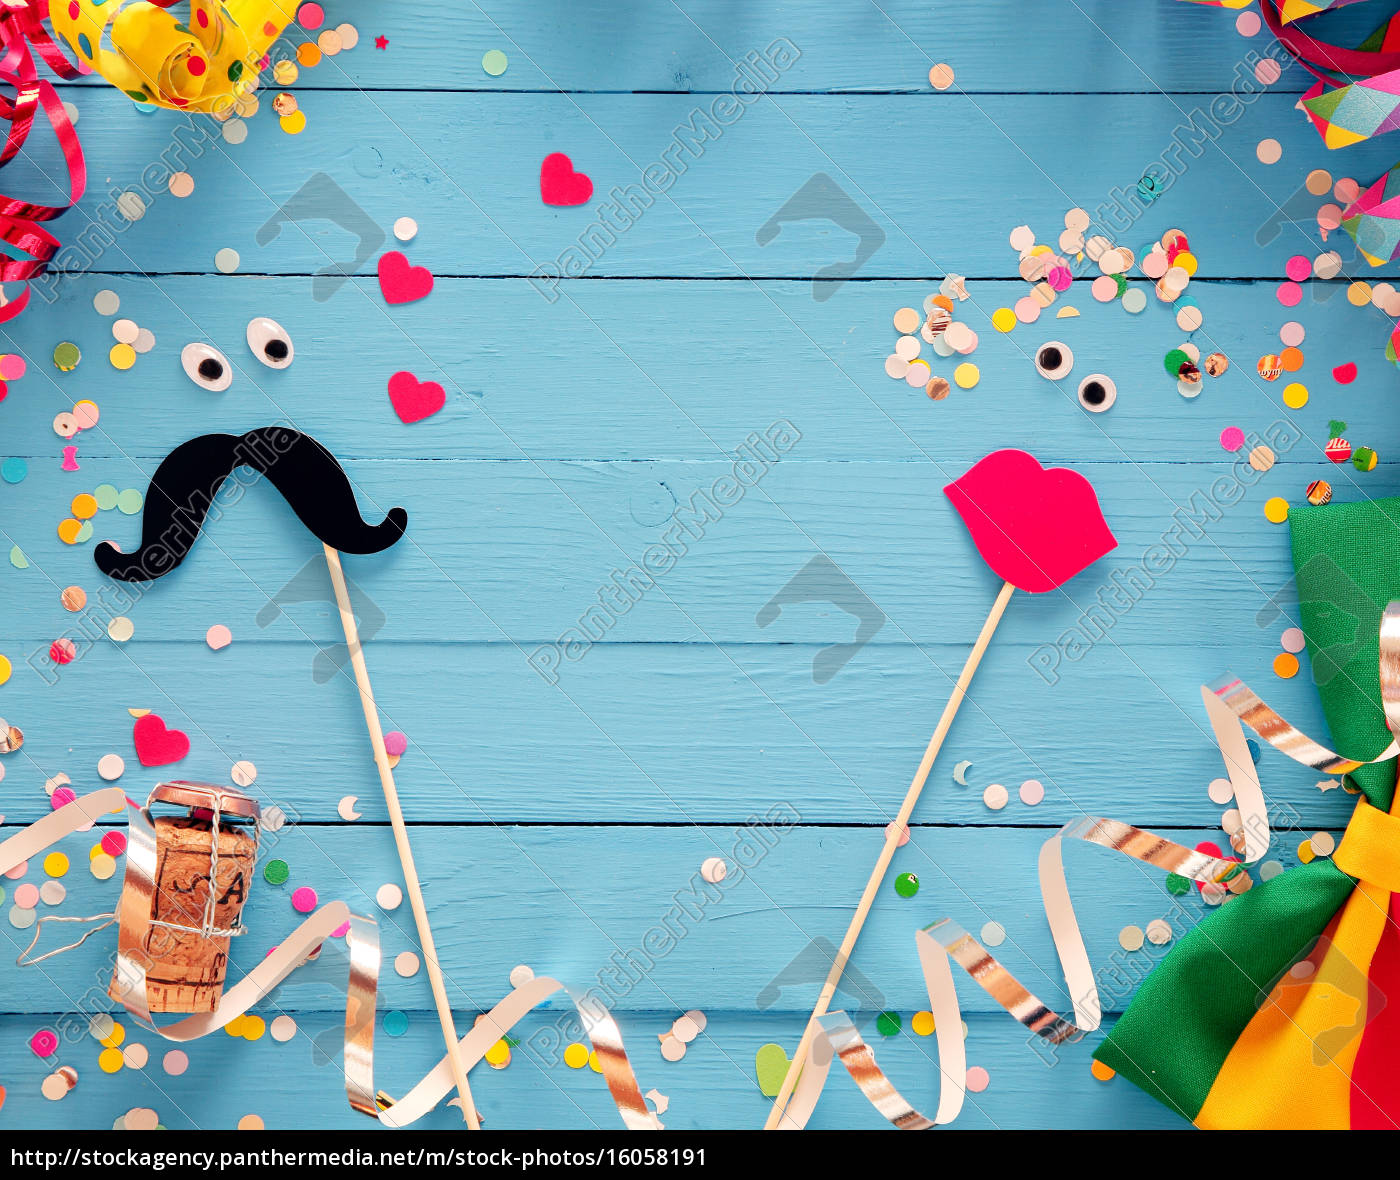 fun, photo, booth, accessories, festive, background - 16058191